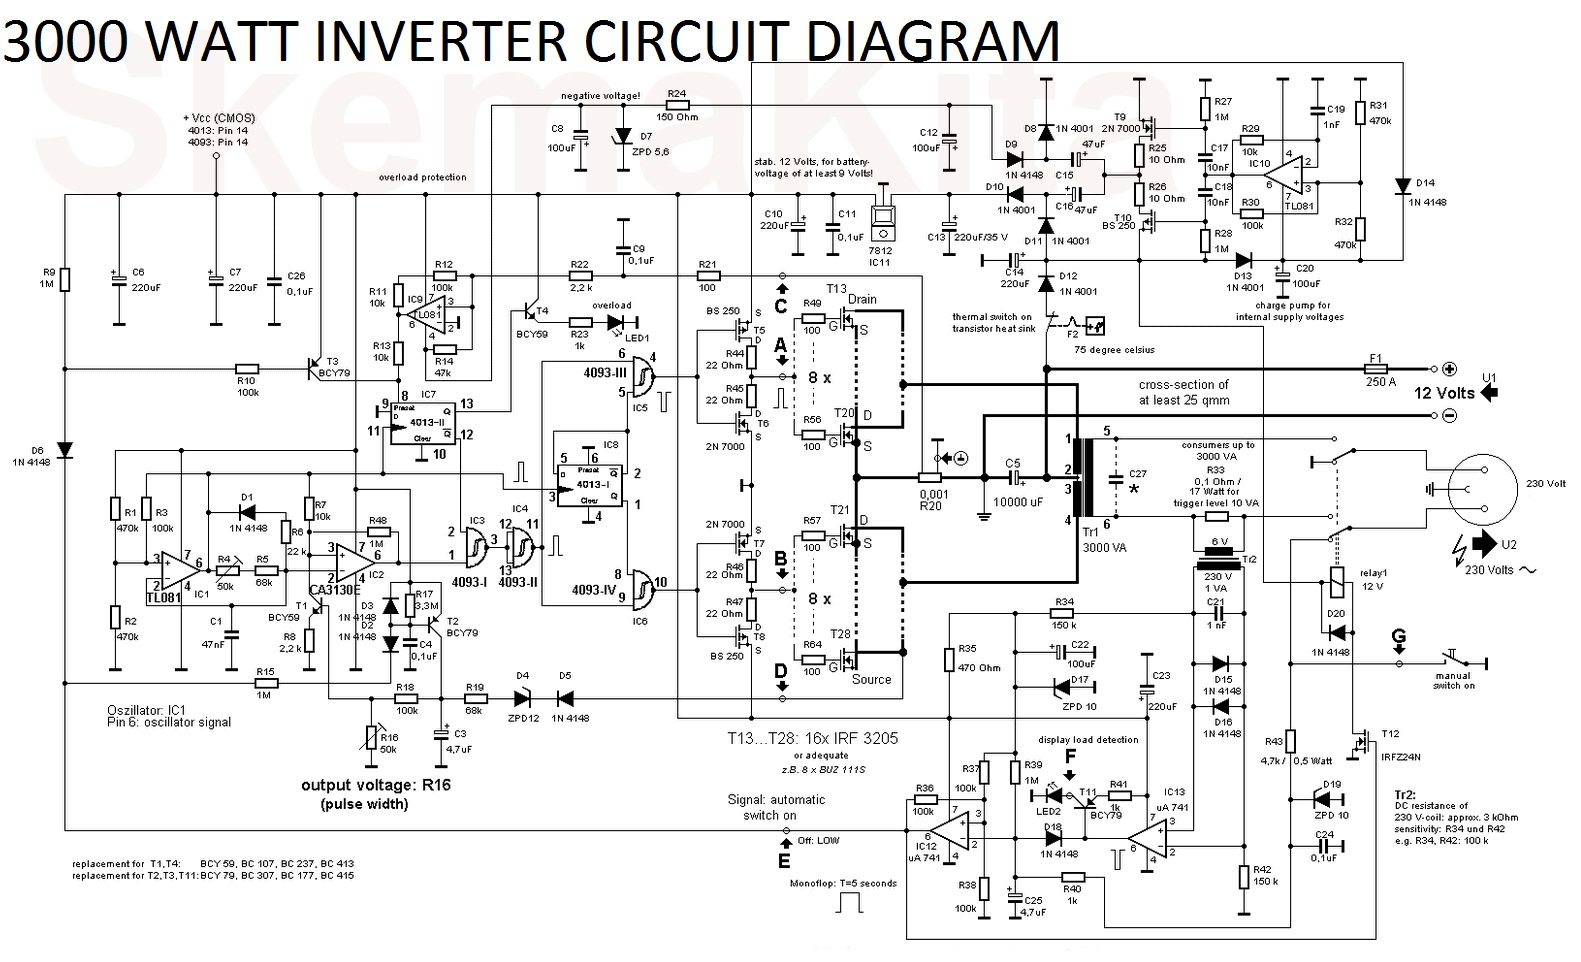 3000 watt inverter circuit diagram electronic circuit rh elcircuit com oscillator circuit diagram for inverter inverter circuit diagram